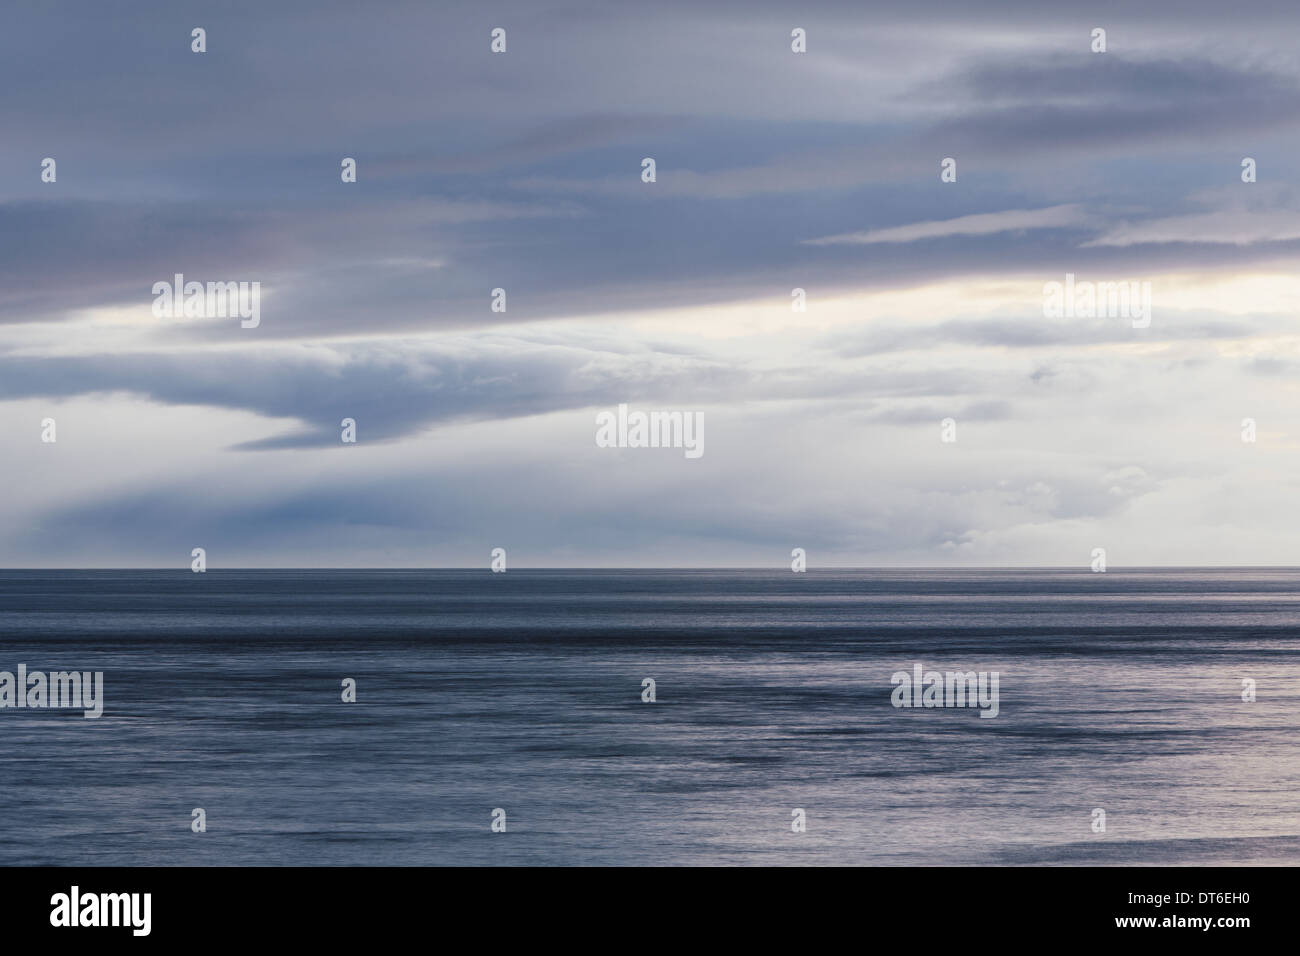 The sea and sky over Puget Sound in Washington, USA. The horizon with light cloud layers above. - Stock Image